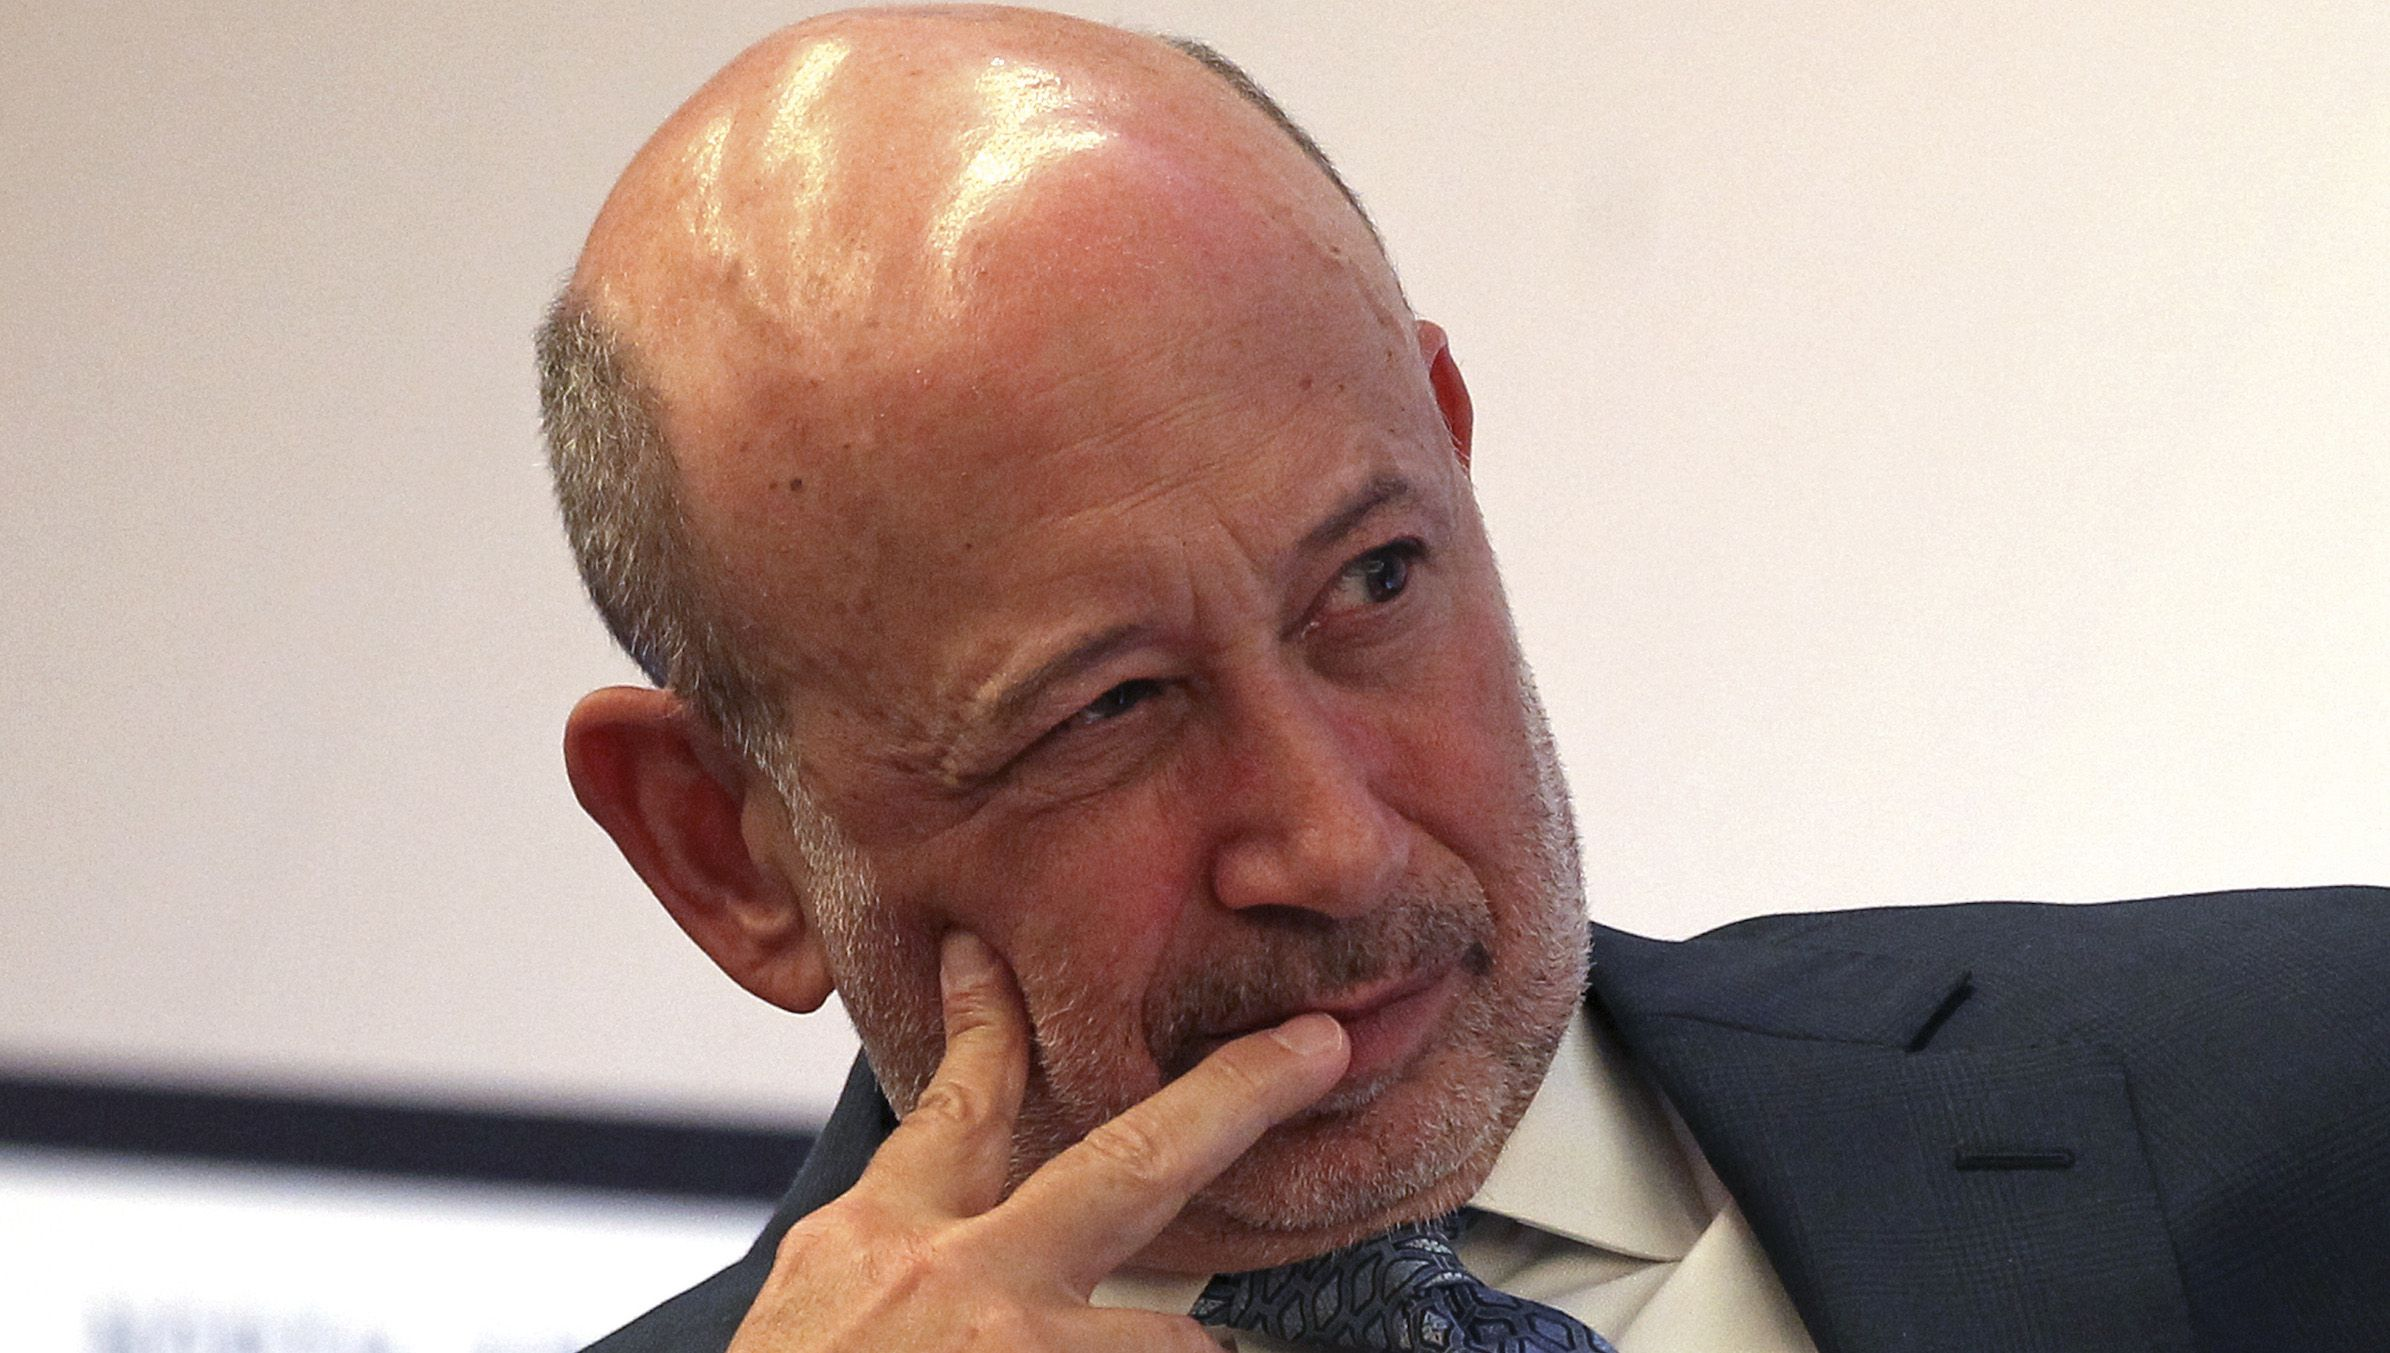 Goldman Sachs Group, Inc. Chairman and Chief Executive Lloyd Blankfein moderates a panel discussion at the North American Energy Summit in the Manhattan borough of New York, June 10, 2014.   REUTERS/Adam Hunger    (UNITED STATES - Tags: BUSINESS POLITICS) - RTR3T4VV